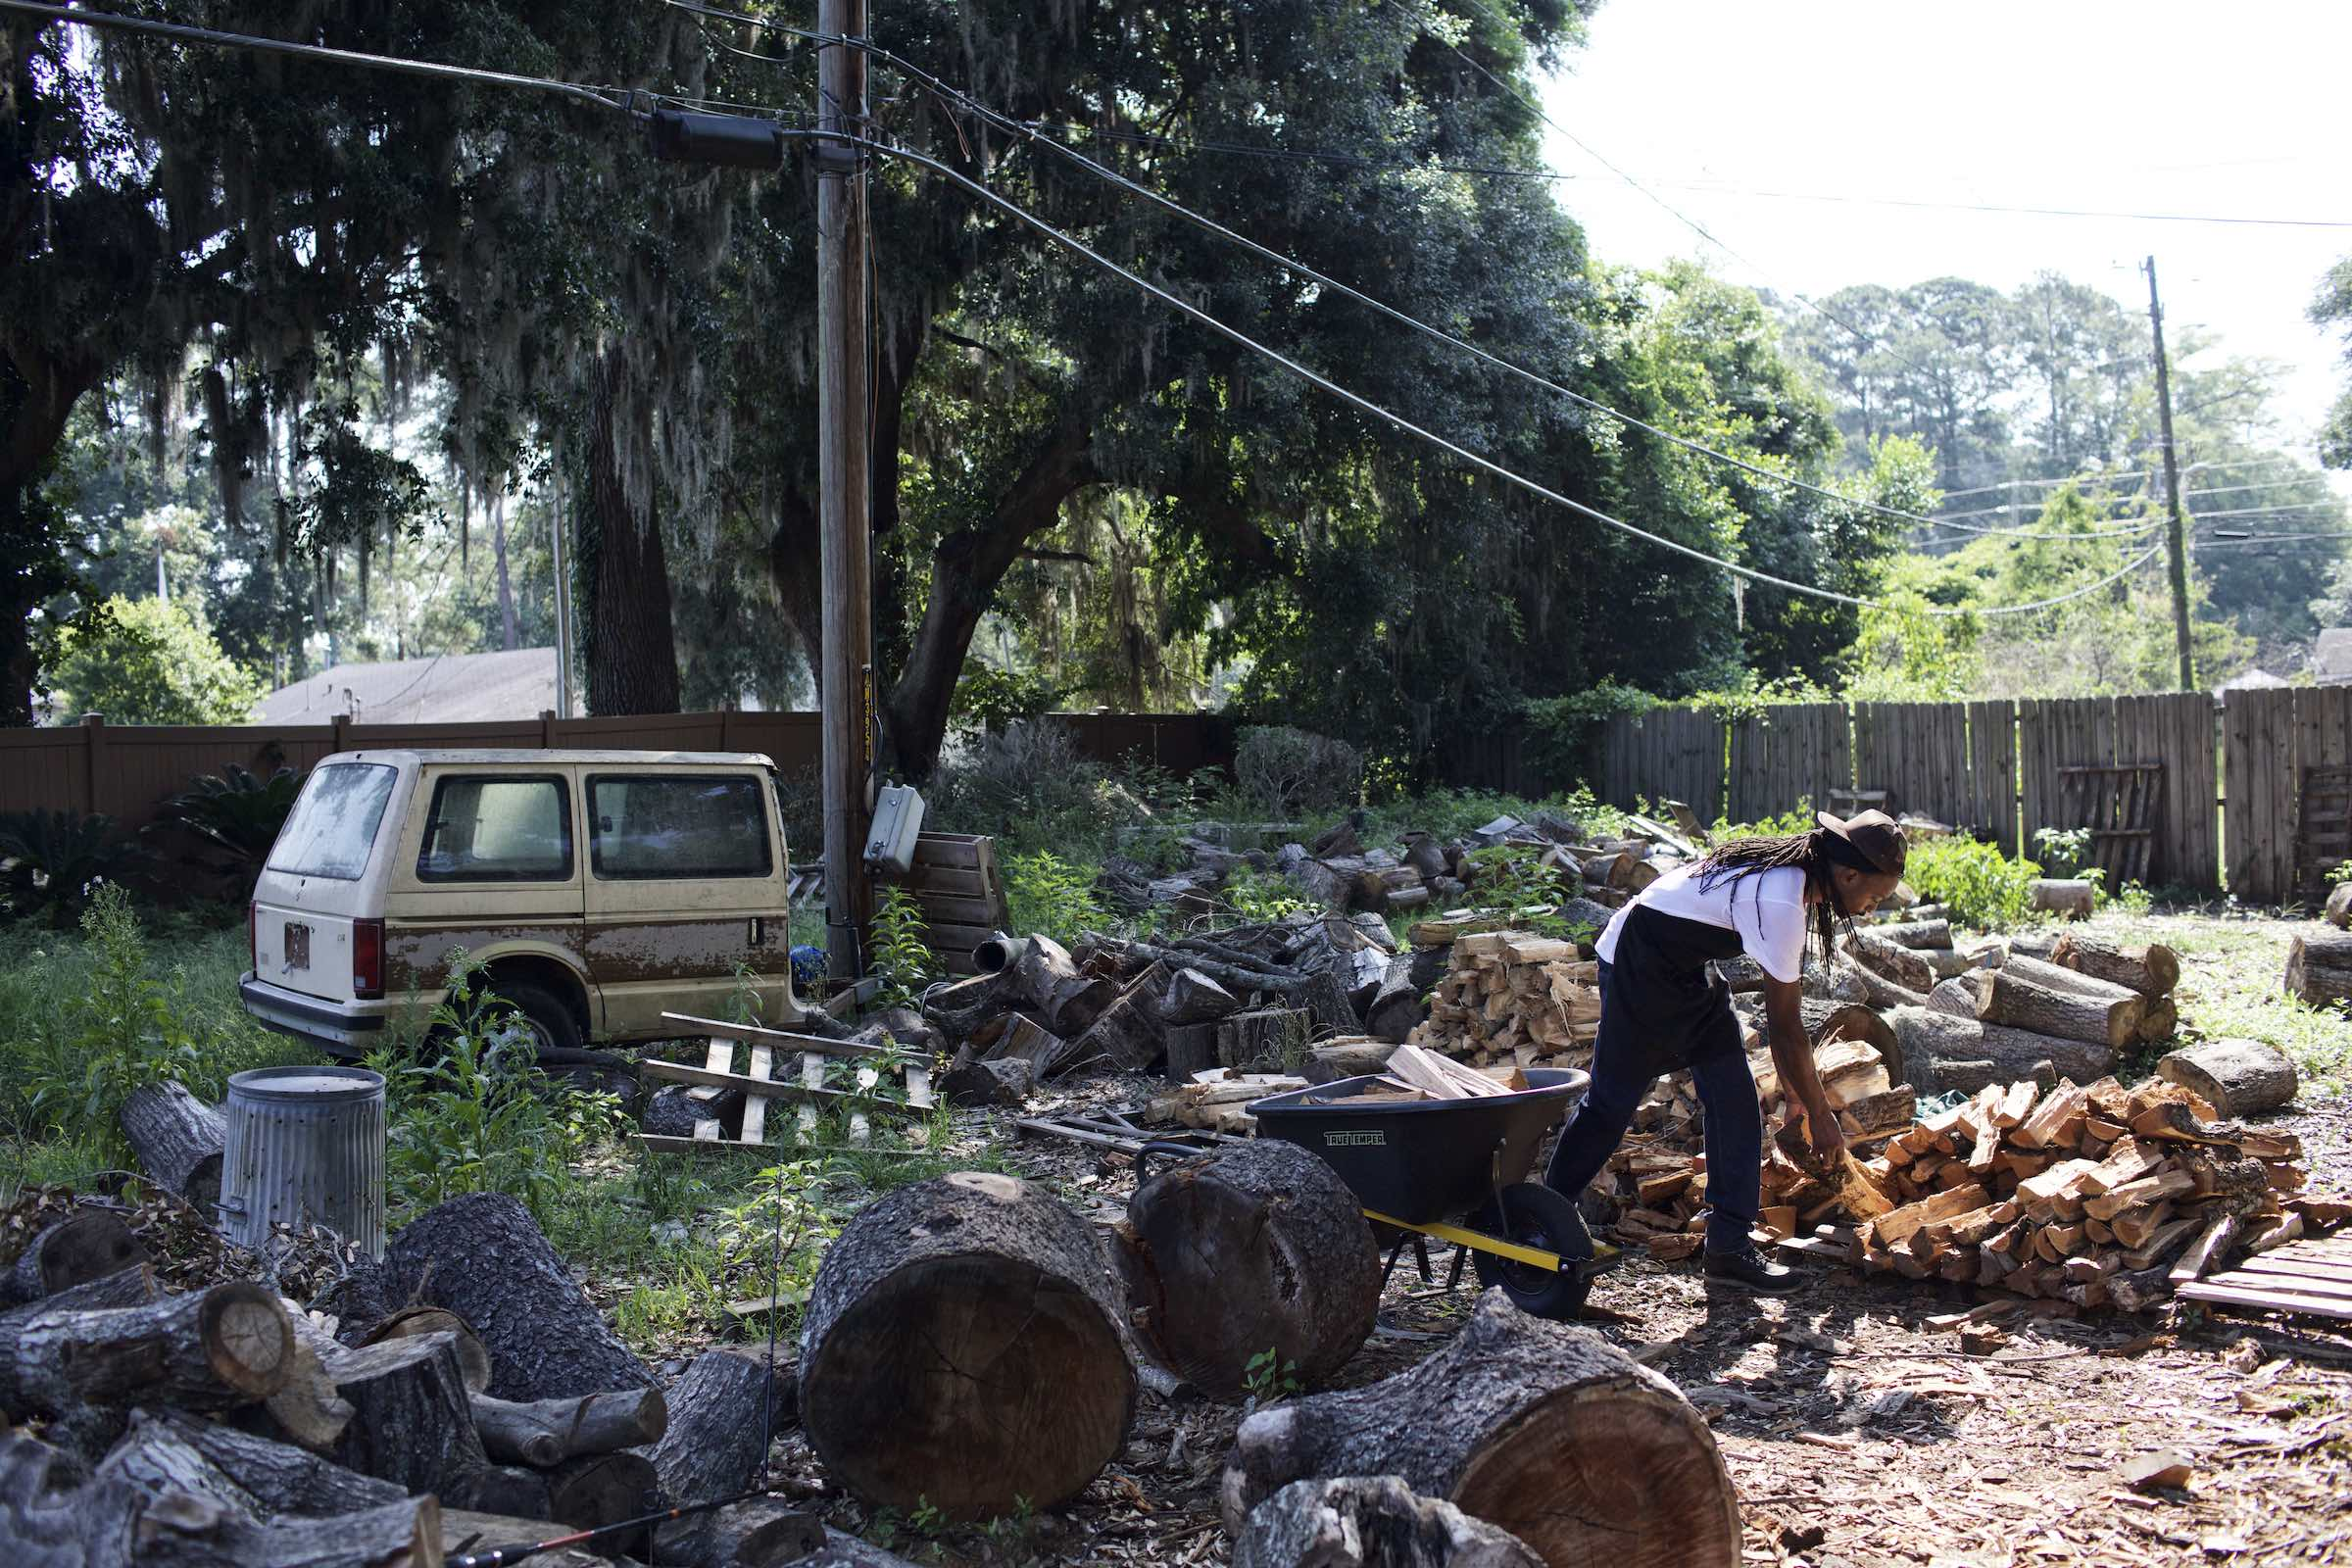 Jody Horton Photography - Chef chopping and piling wood in a lush yet disheveled yard.